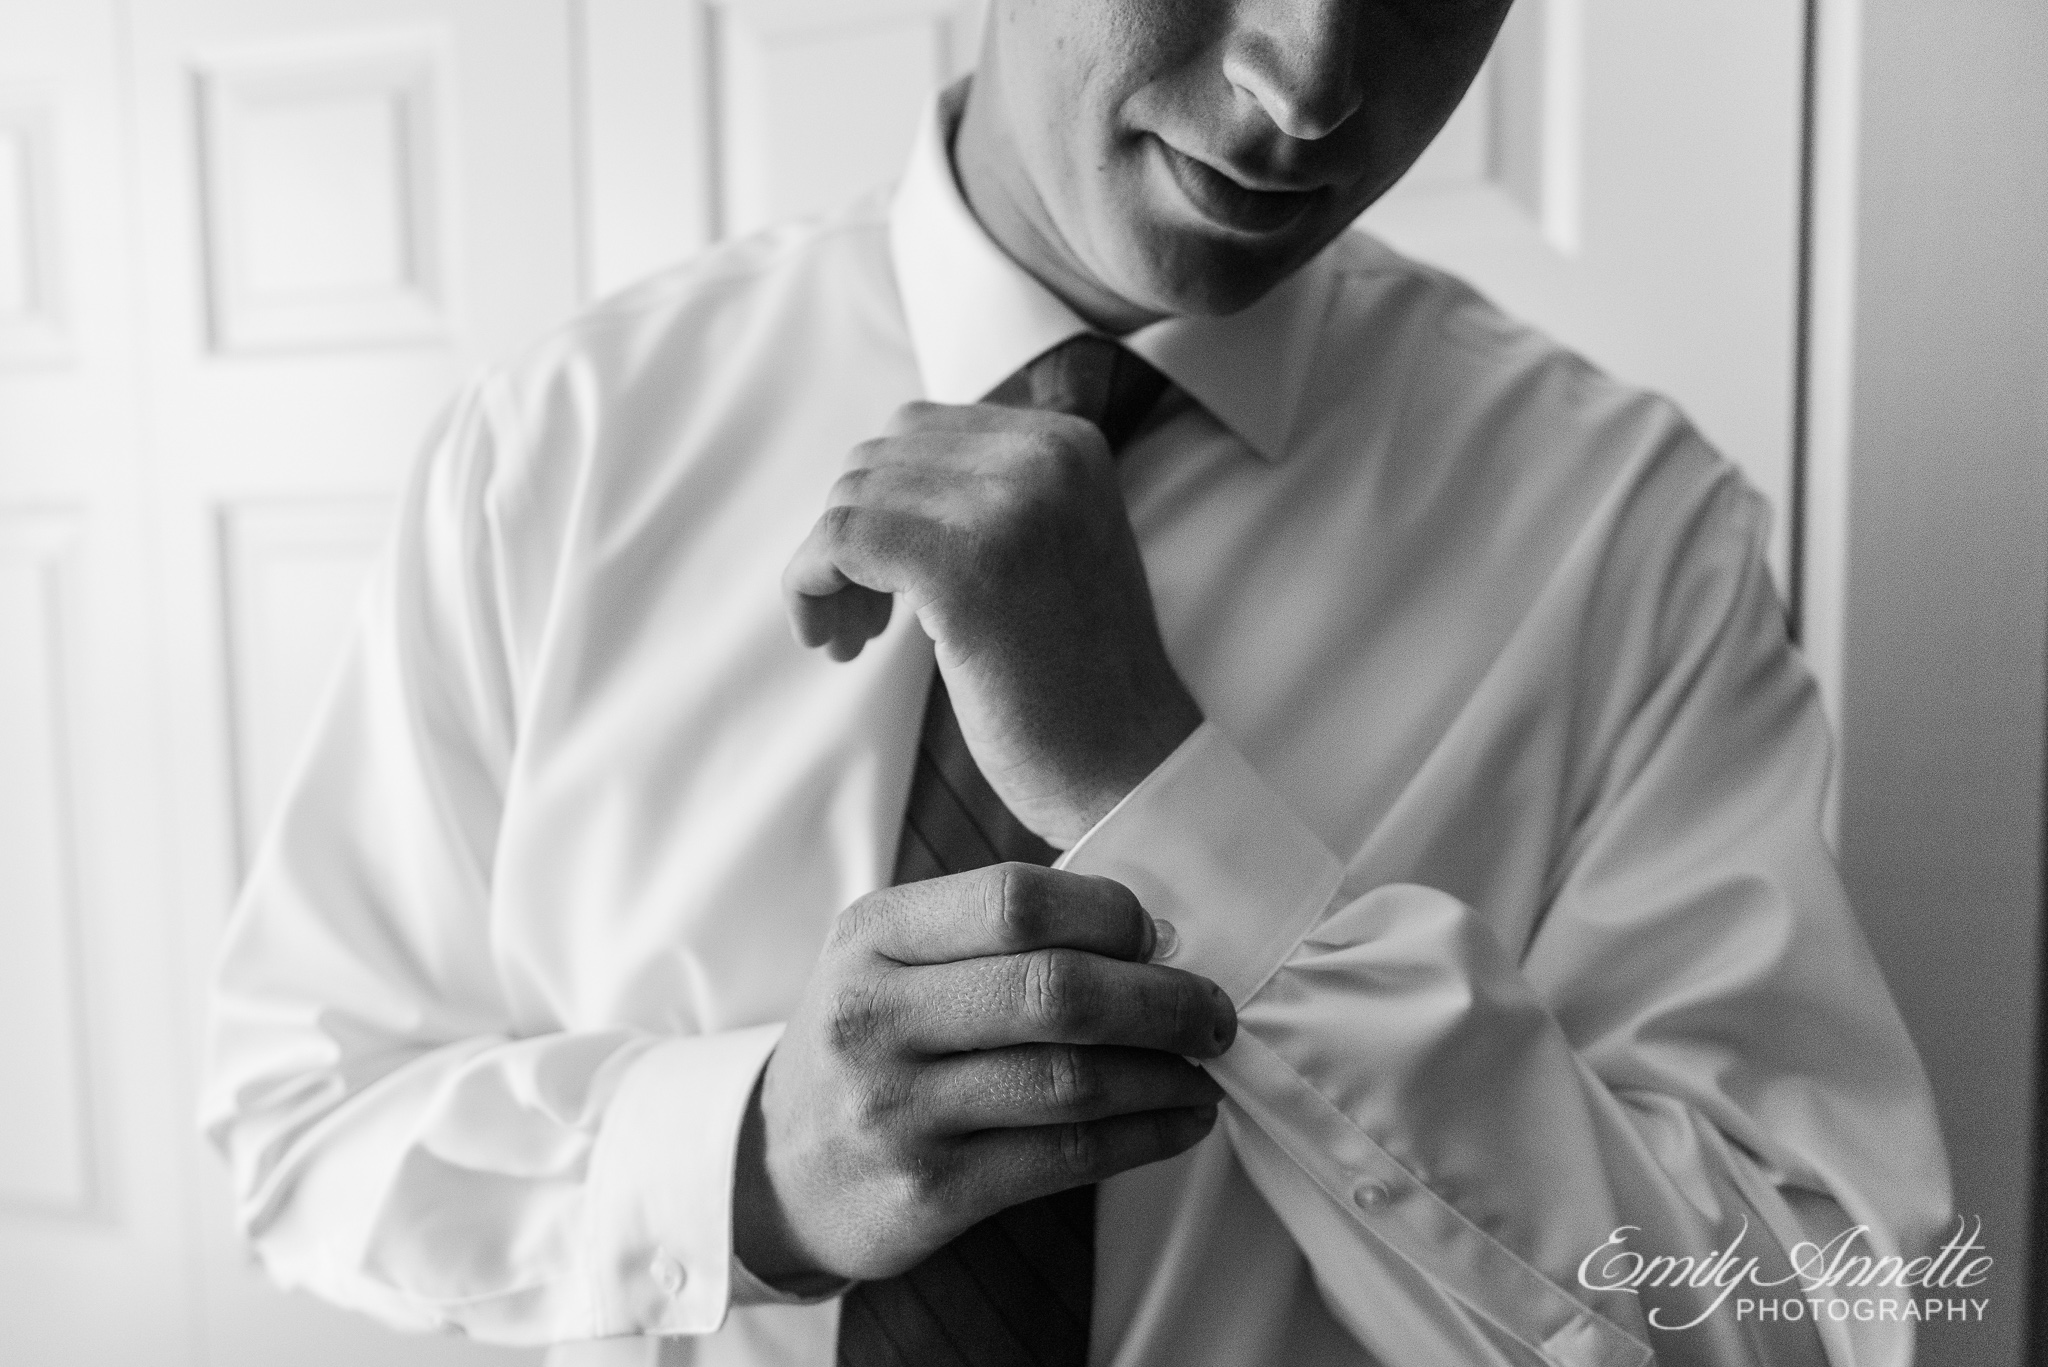 A groom adjusts his cuffs while getting ready before his wedding ceremony at Amber Grove near Richmond, Virginia